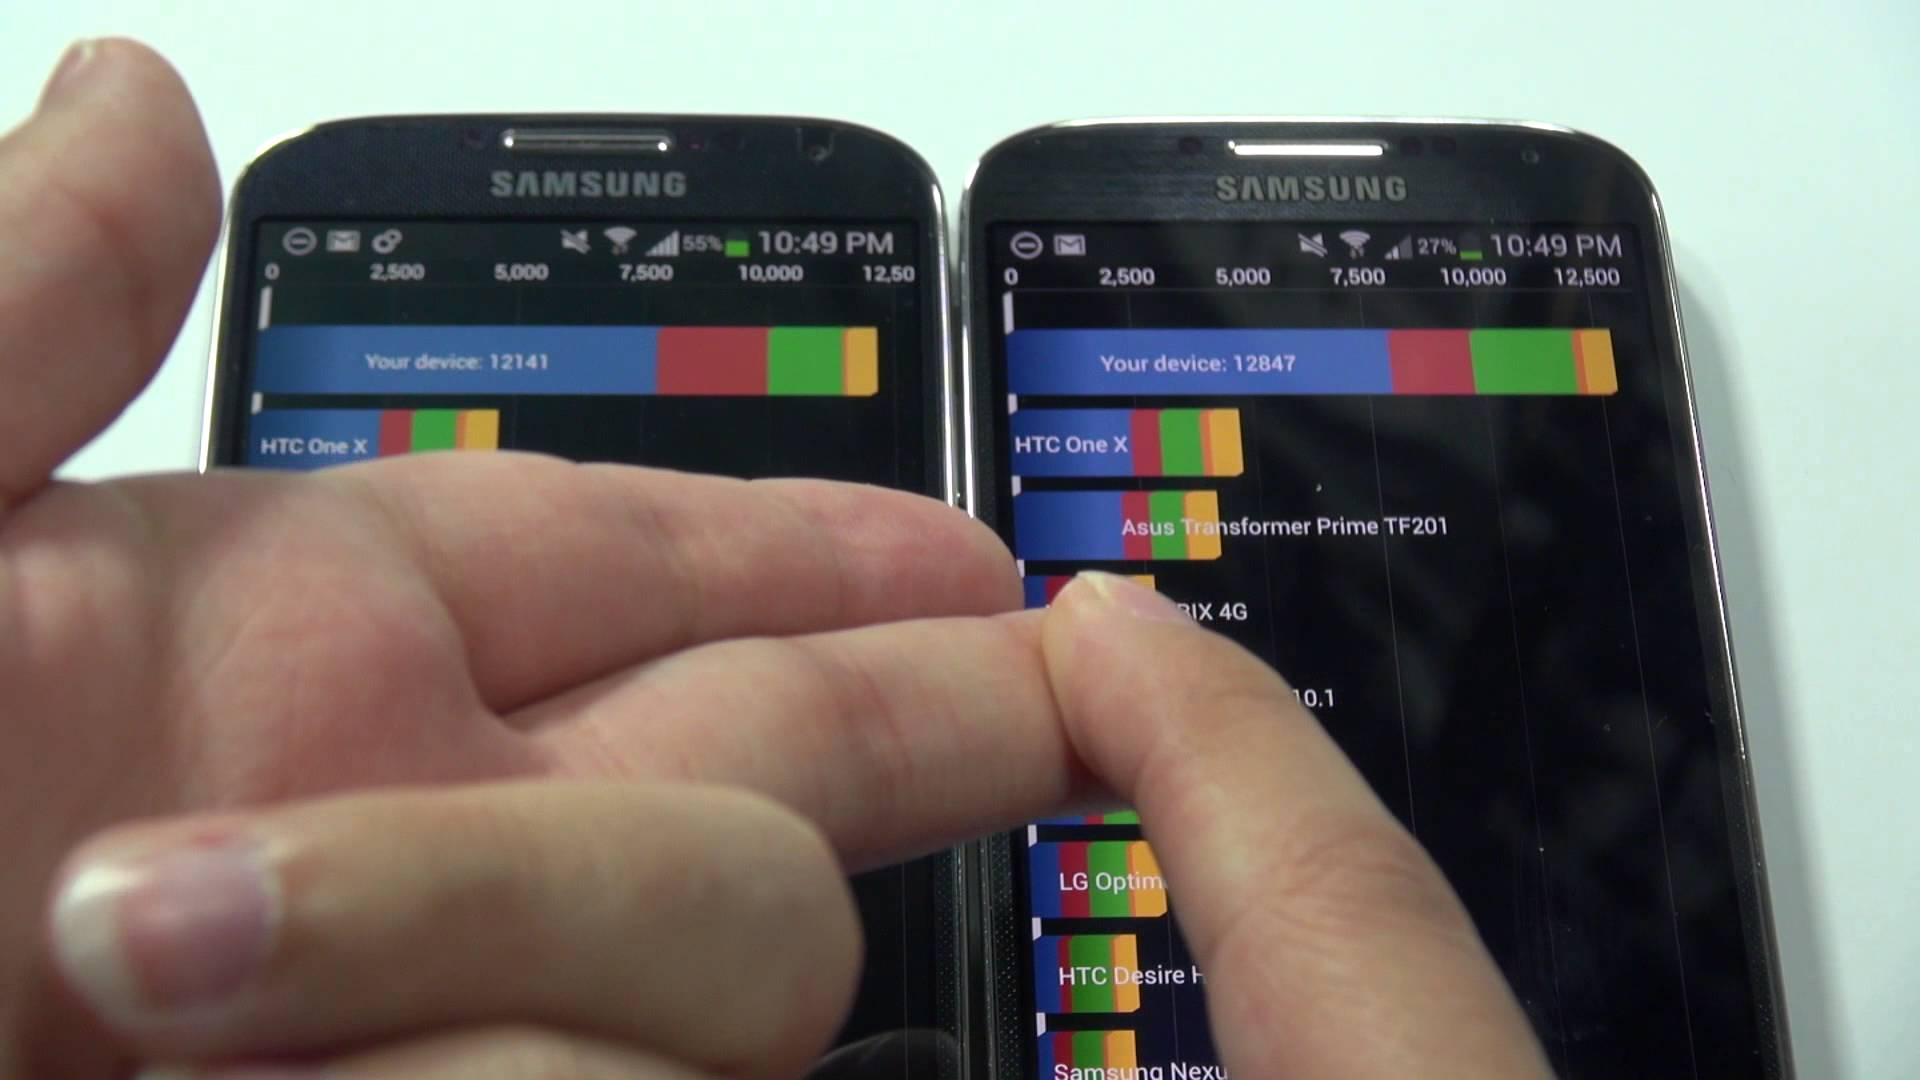 Galaxy S4 Exynos vs Snapdragon: Which is Best?